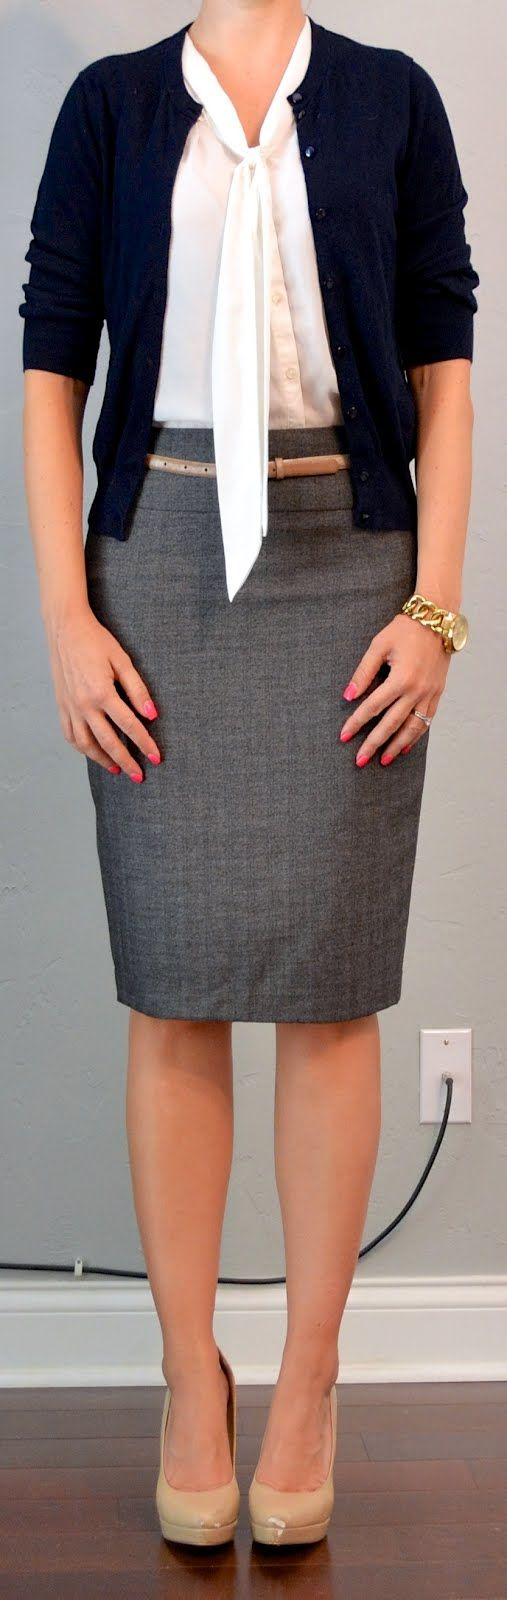 Minimal look, clean lines, neutral colors w/ neck-tie blouse via Outfit - Best 25+ Grey Pencil Skirt Ideas On Pinterest Gray Skirt Outfits